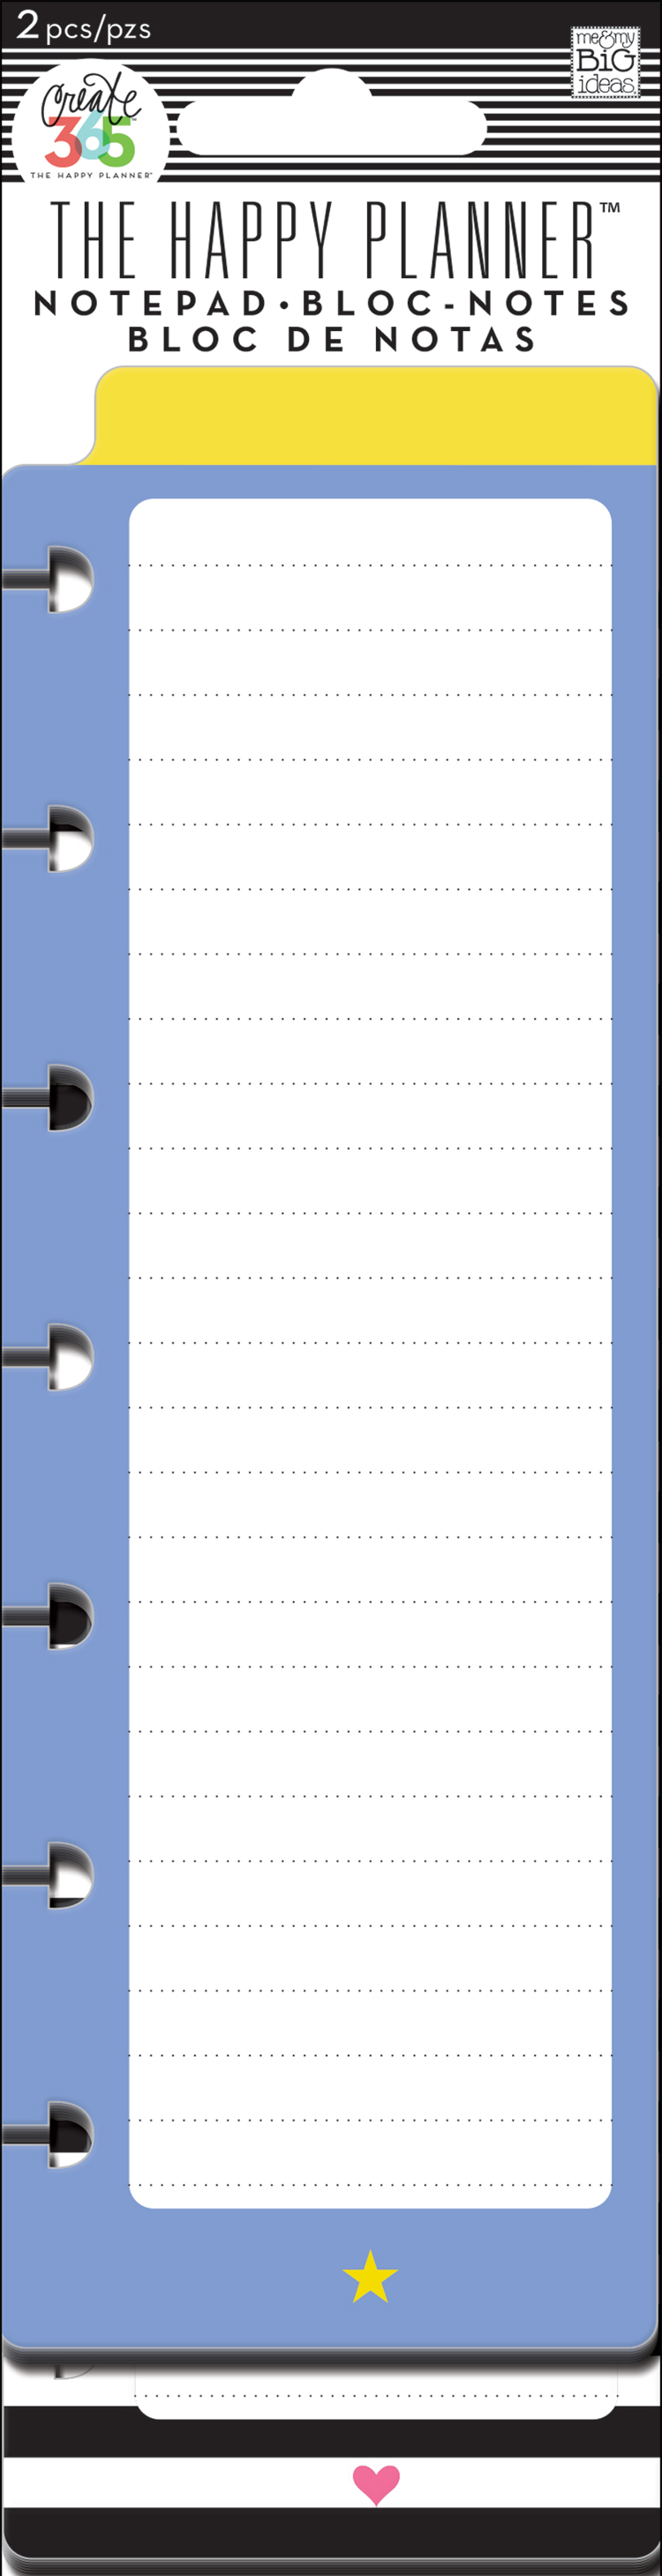 'Star & Heart' notepads for The Happy Planner™ | me & my BIG ideas.jpg